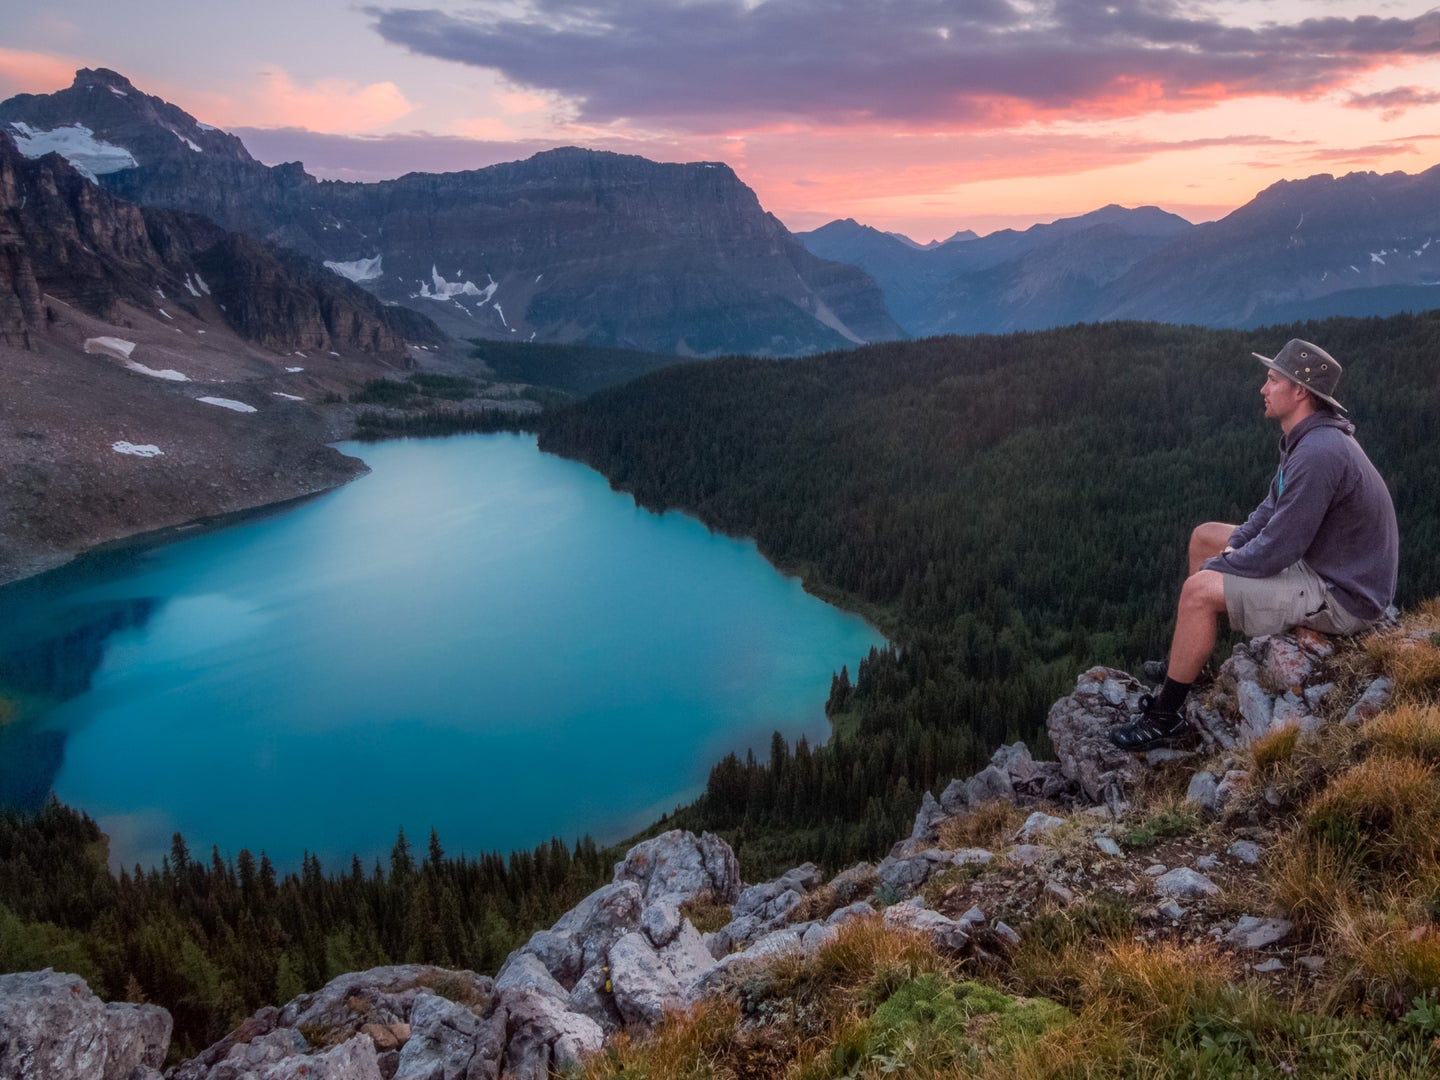 A person wearing a wide-brimmed hat sitting on some rocks high above a bright blue glacial lake in the mountians.